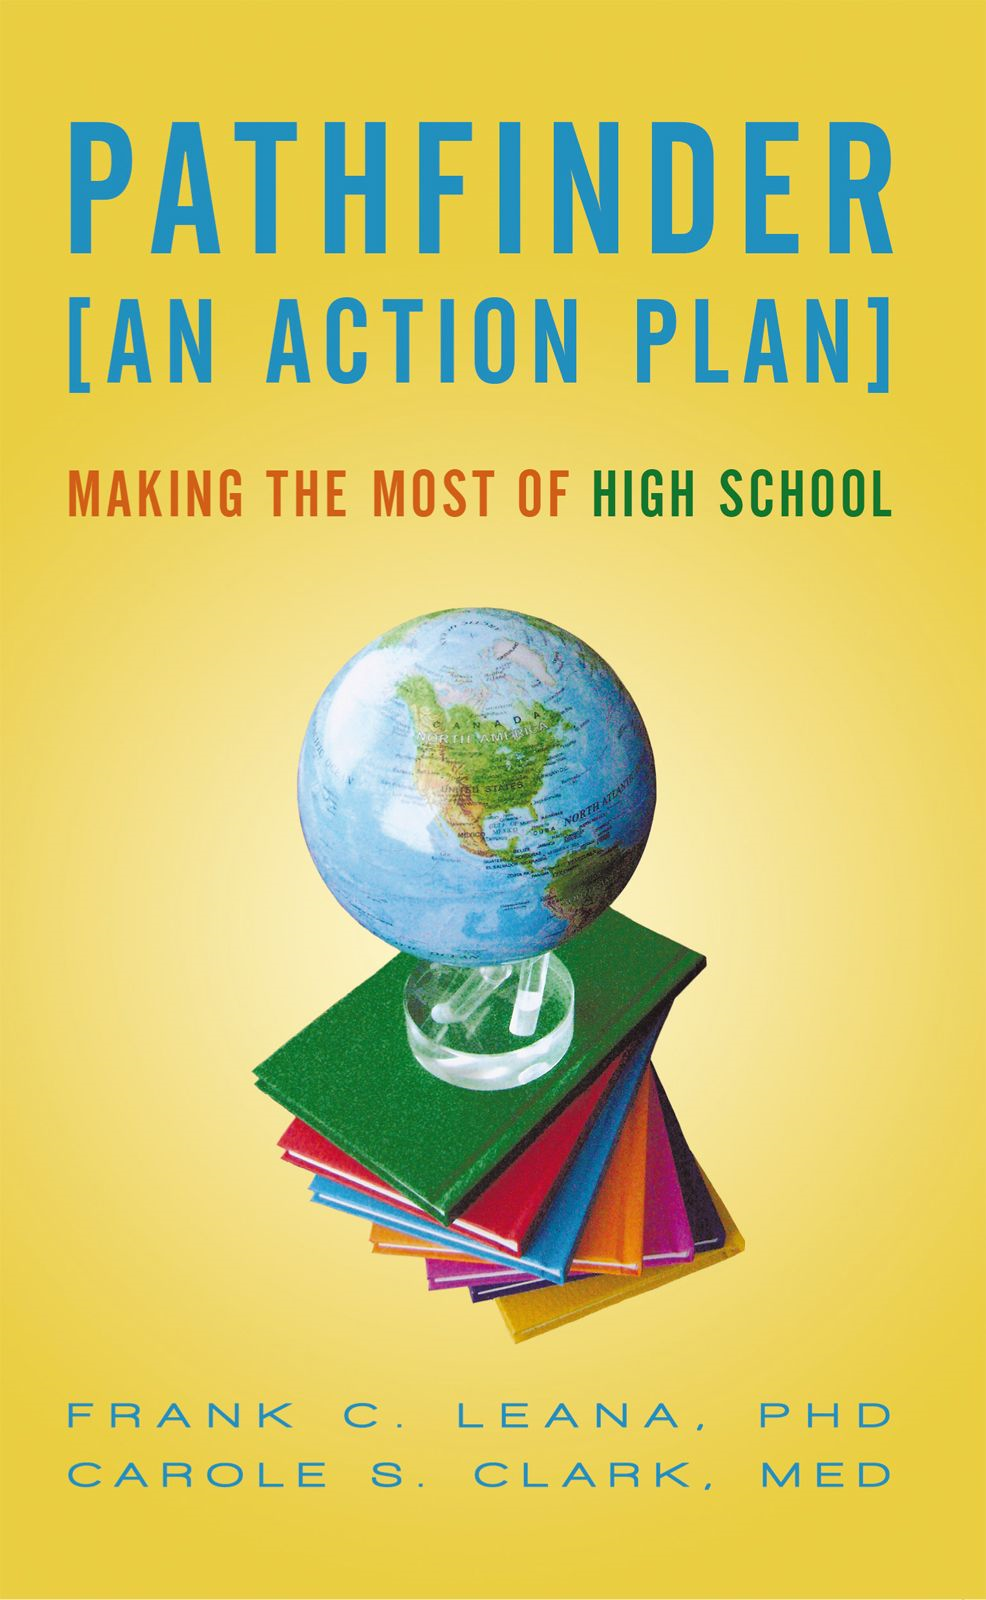 Pathfinder: An Action Plan By: Frank C. Leana PhD and Carole S. Clark Med